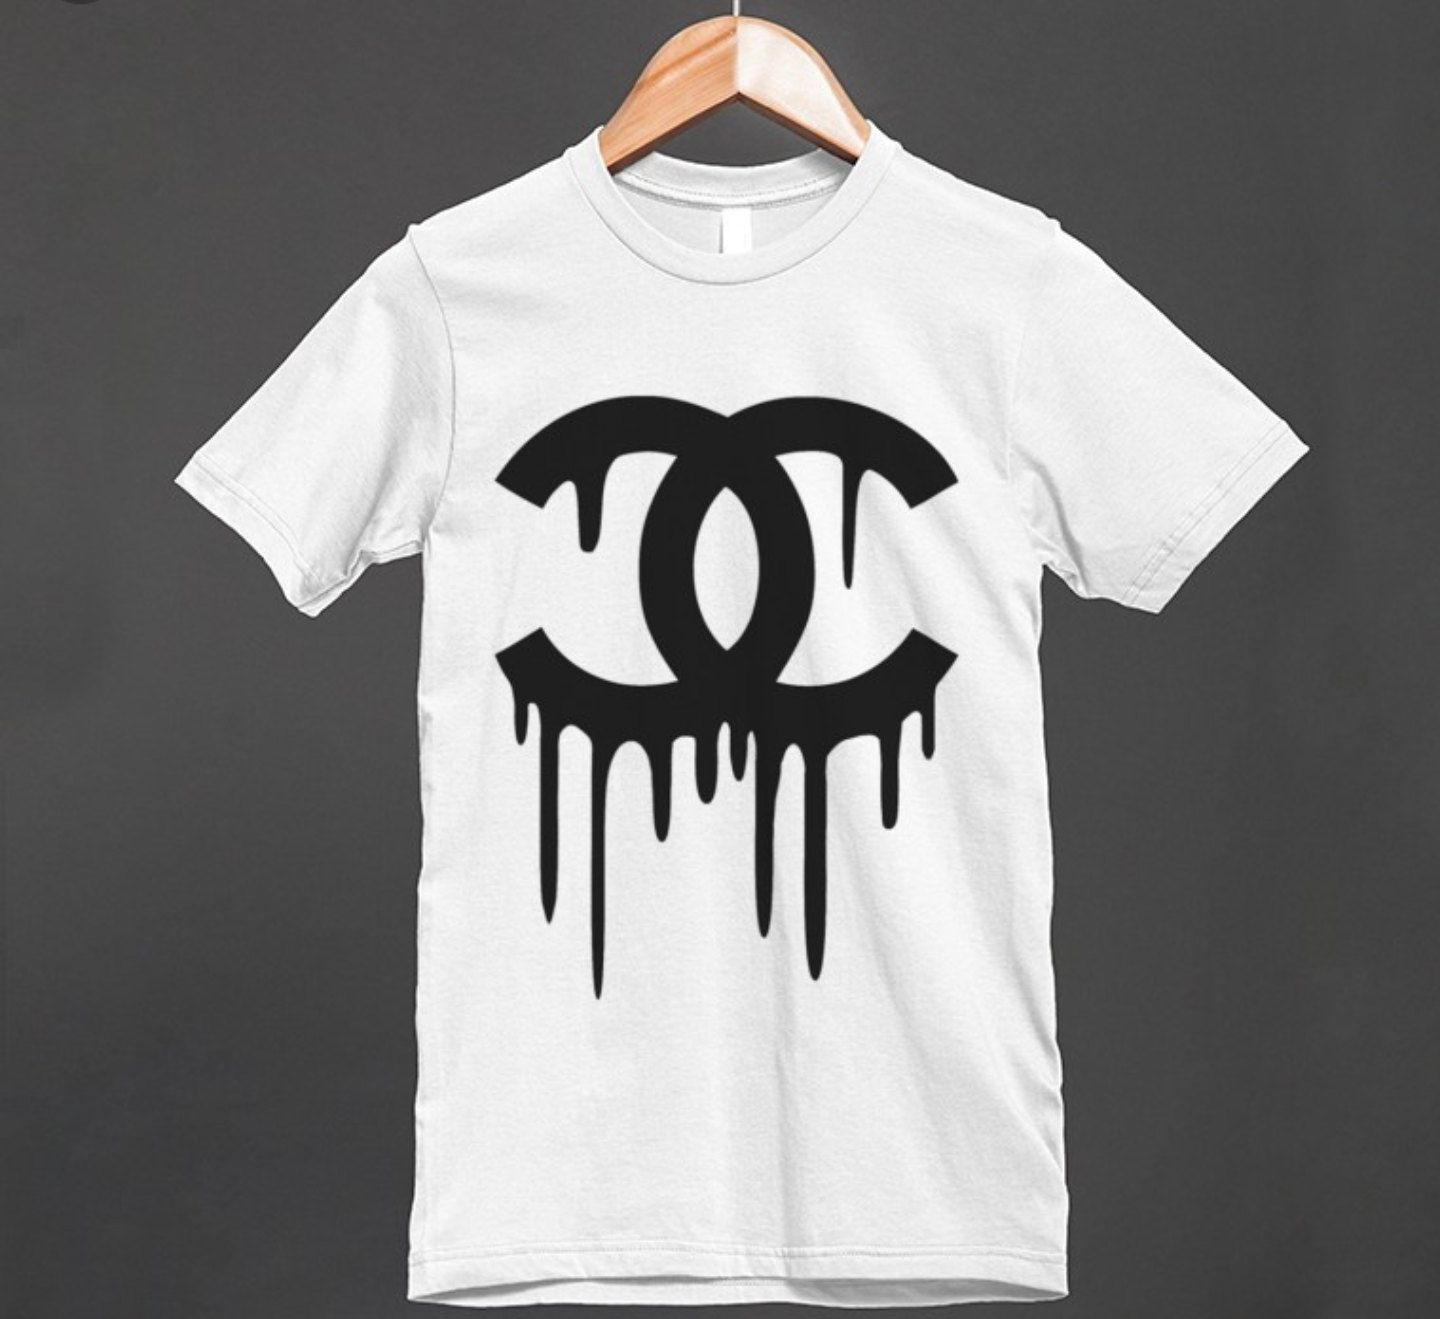 9e7b2f1857b Chanel inspired t shirt. Dripping Chanel logo. Unisex. Trendy shirts Size  s-3x. Fast Free shipping anywhere in the United States! by DropsofJupiter07  on ...